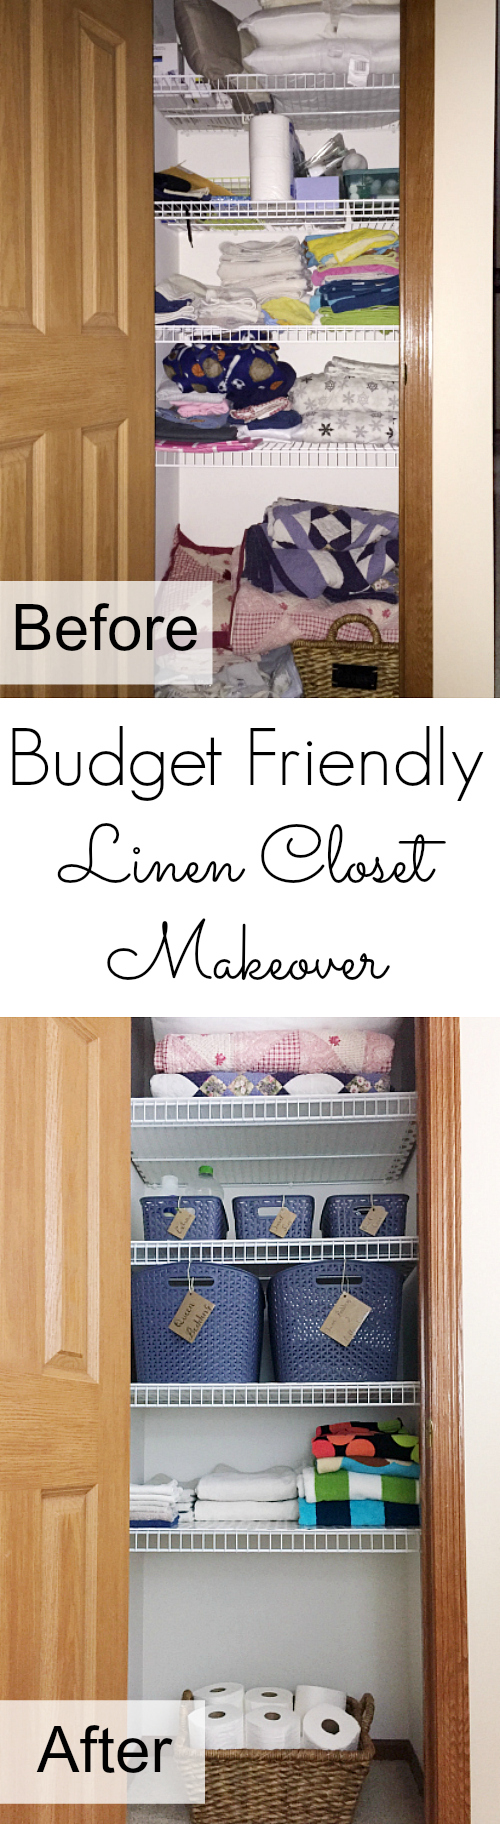 Love that this linen closet makeover was done for less than $50! Great ideas.